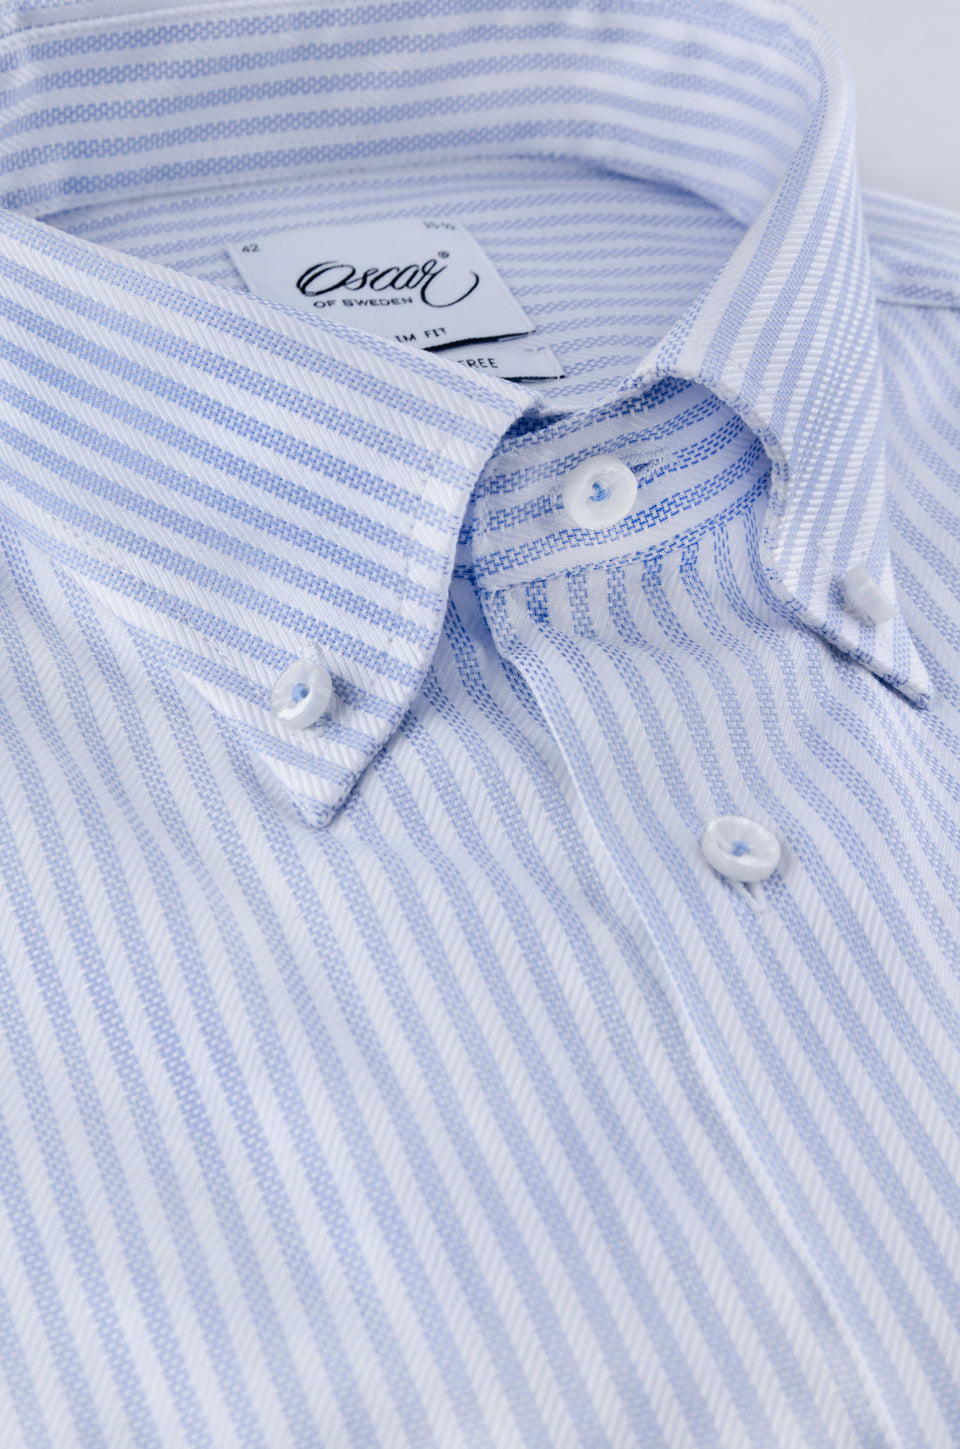 Lightblue and white striped slim fit button-down shirt